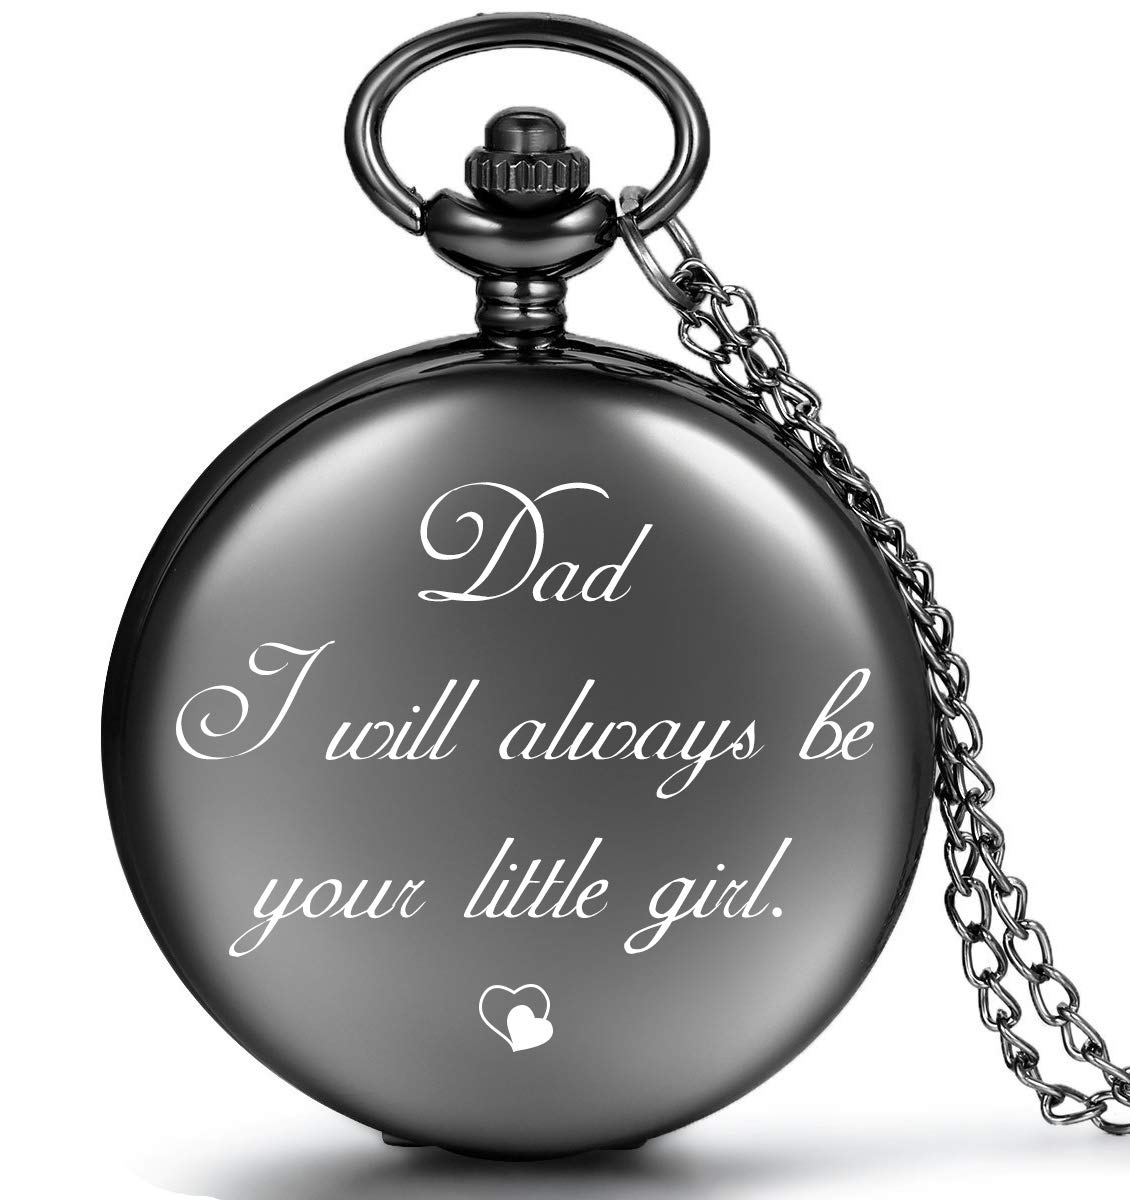 LEVONTA Best Dad Gifts from Daughter for Birthday, Personalized Gifts for Dad Christmas Valentines Day Fathers Day (Dad's Little Girl)